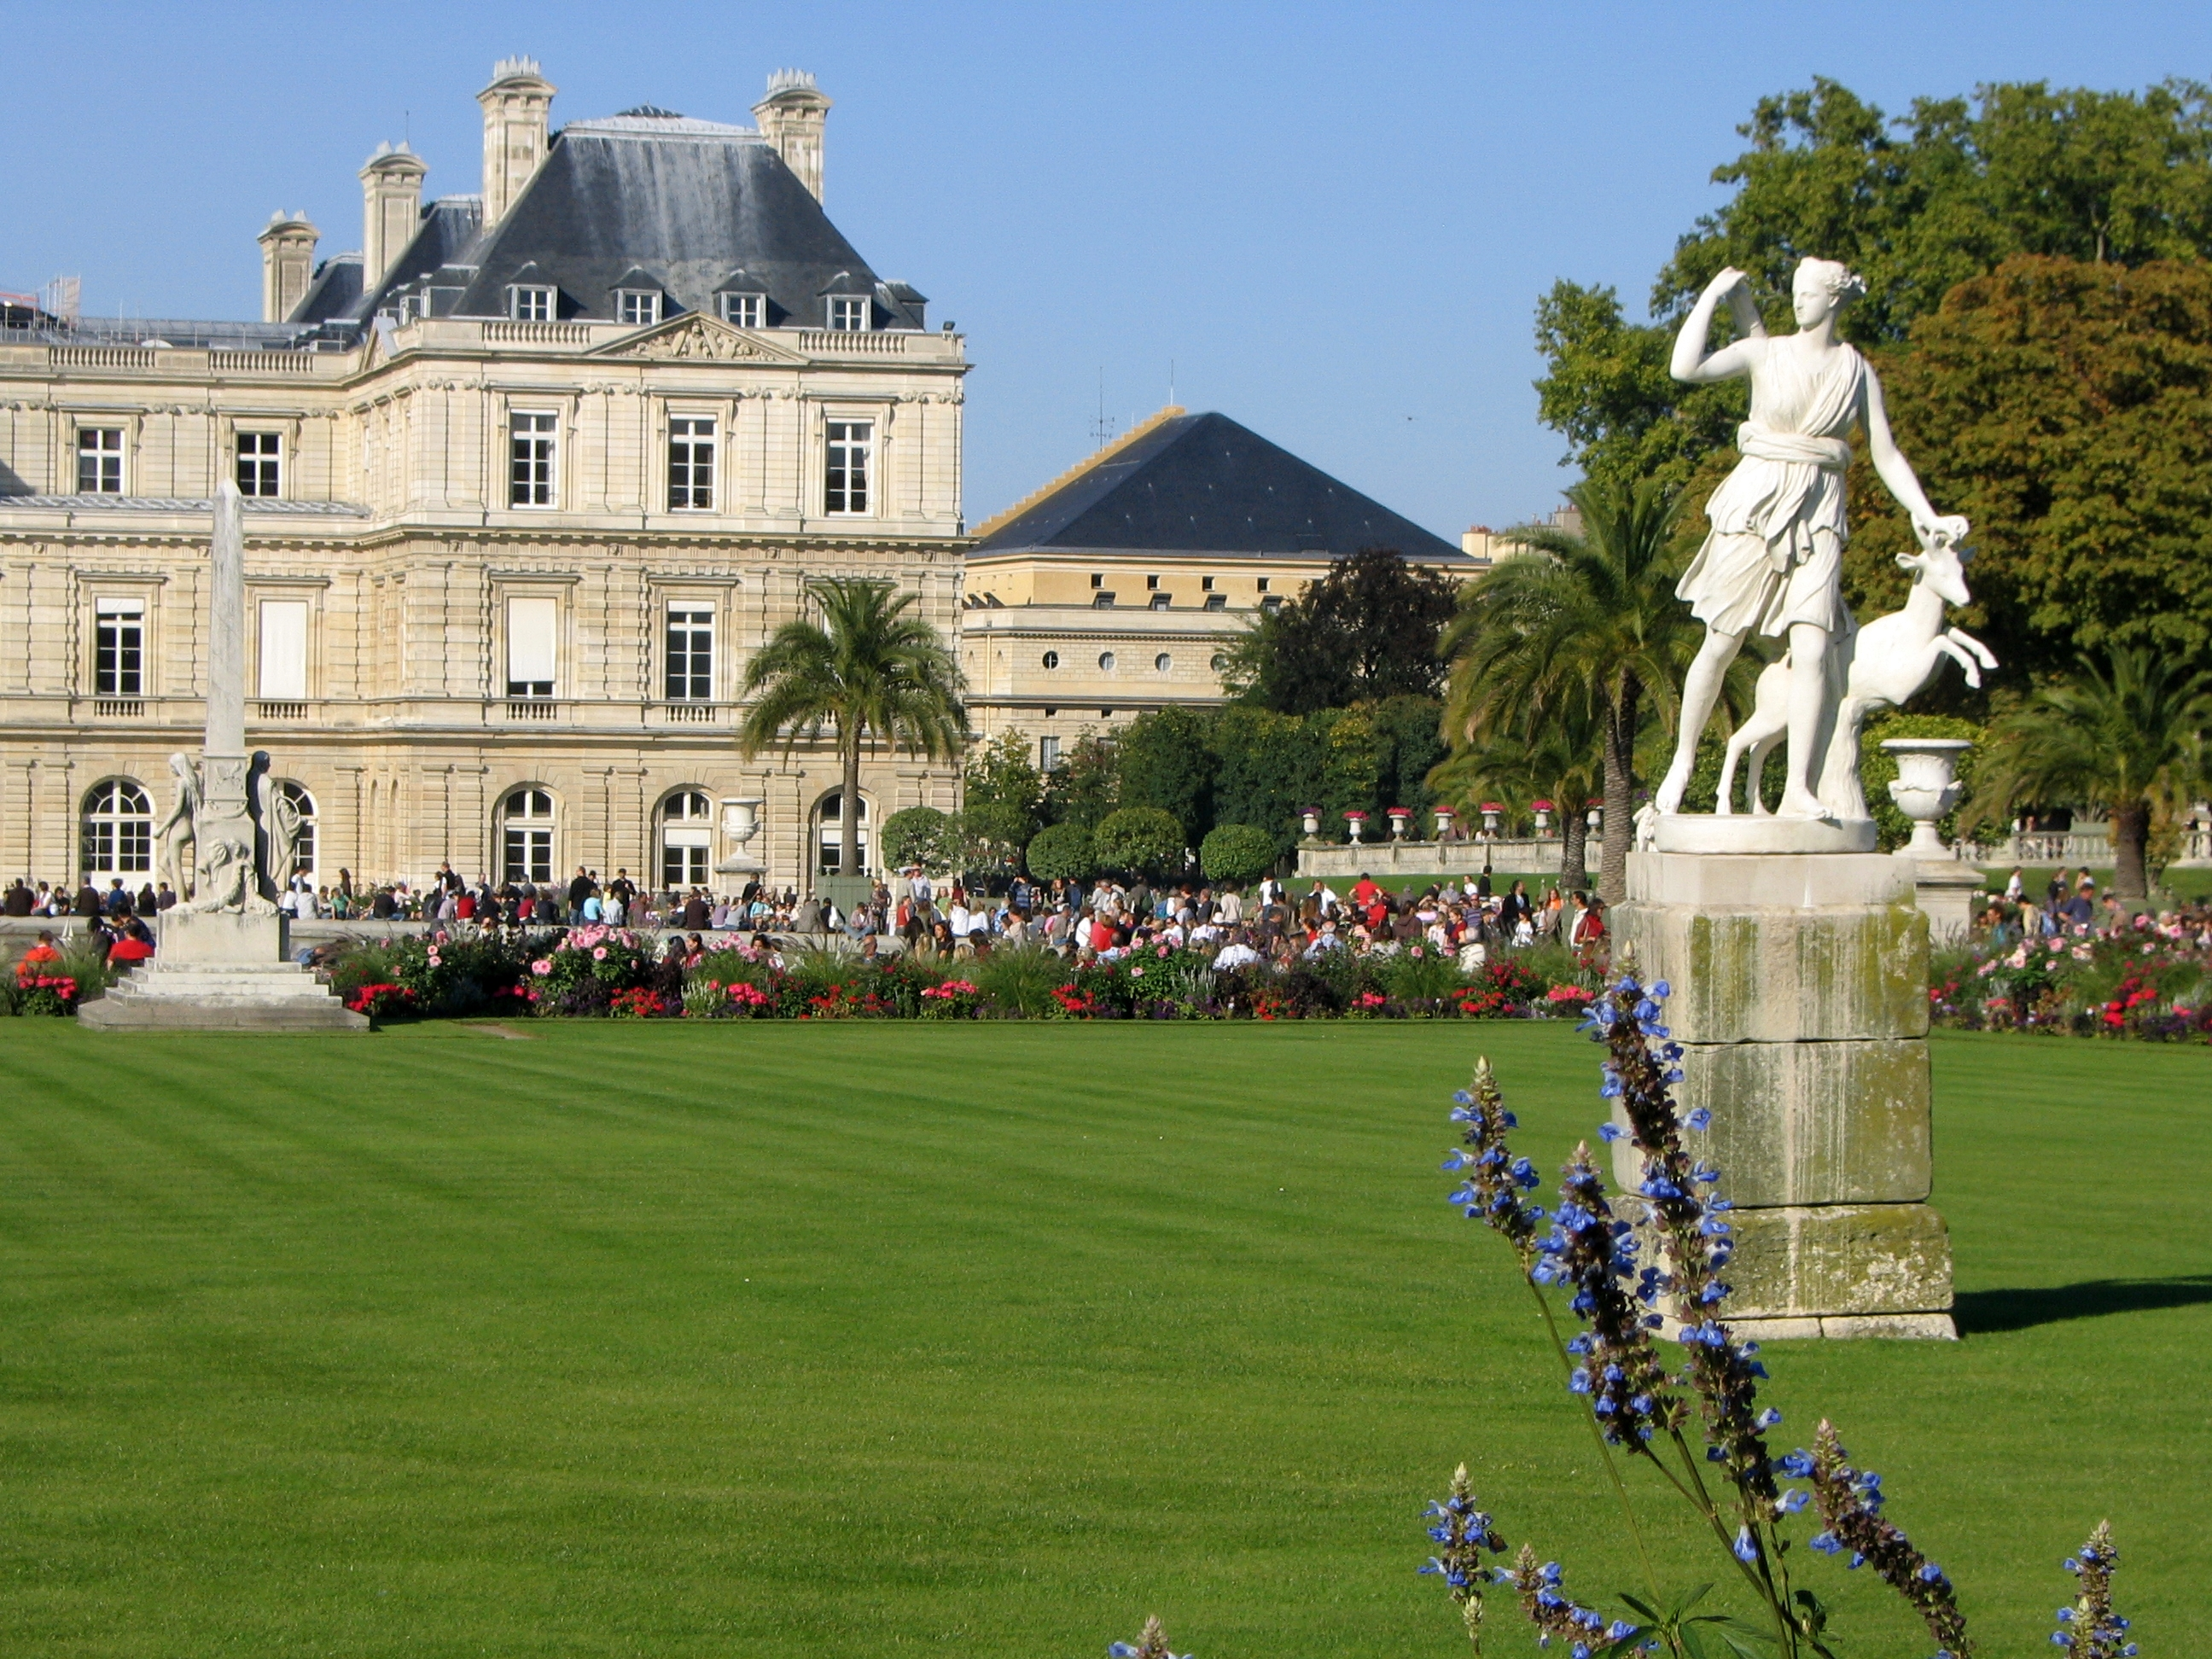 Le Jardin et le Palais du Luxembourg by Katy Richards on Prezi